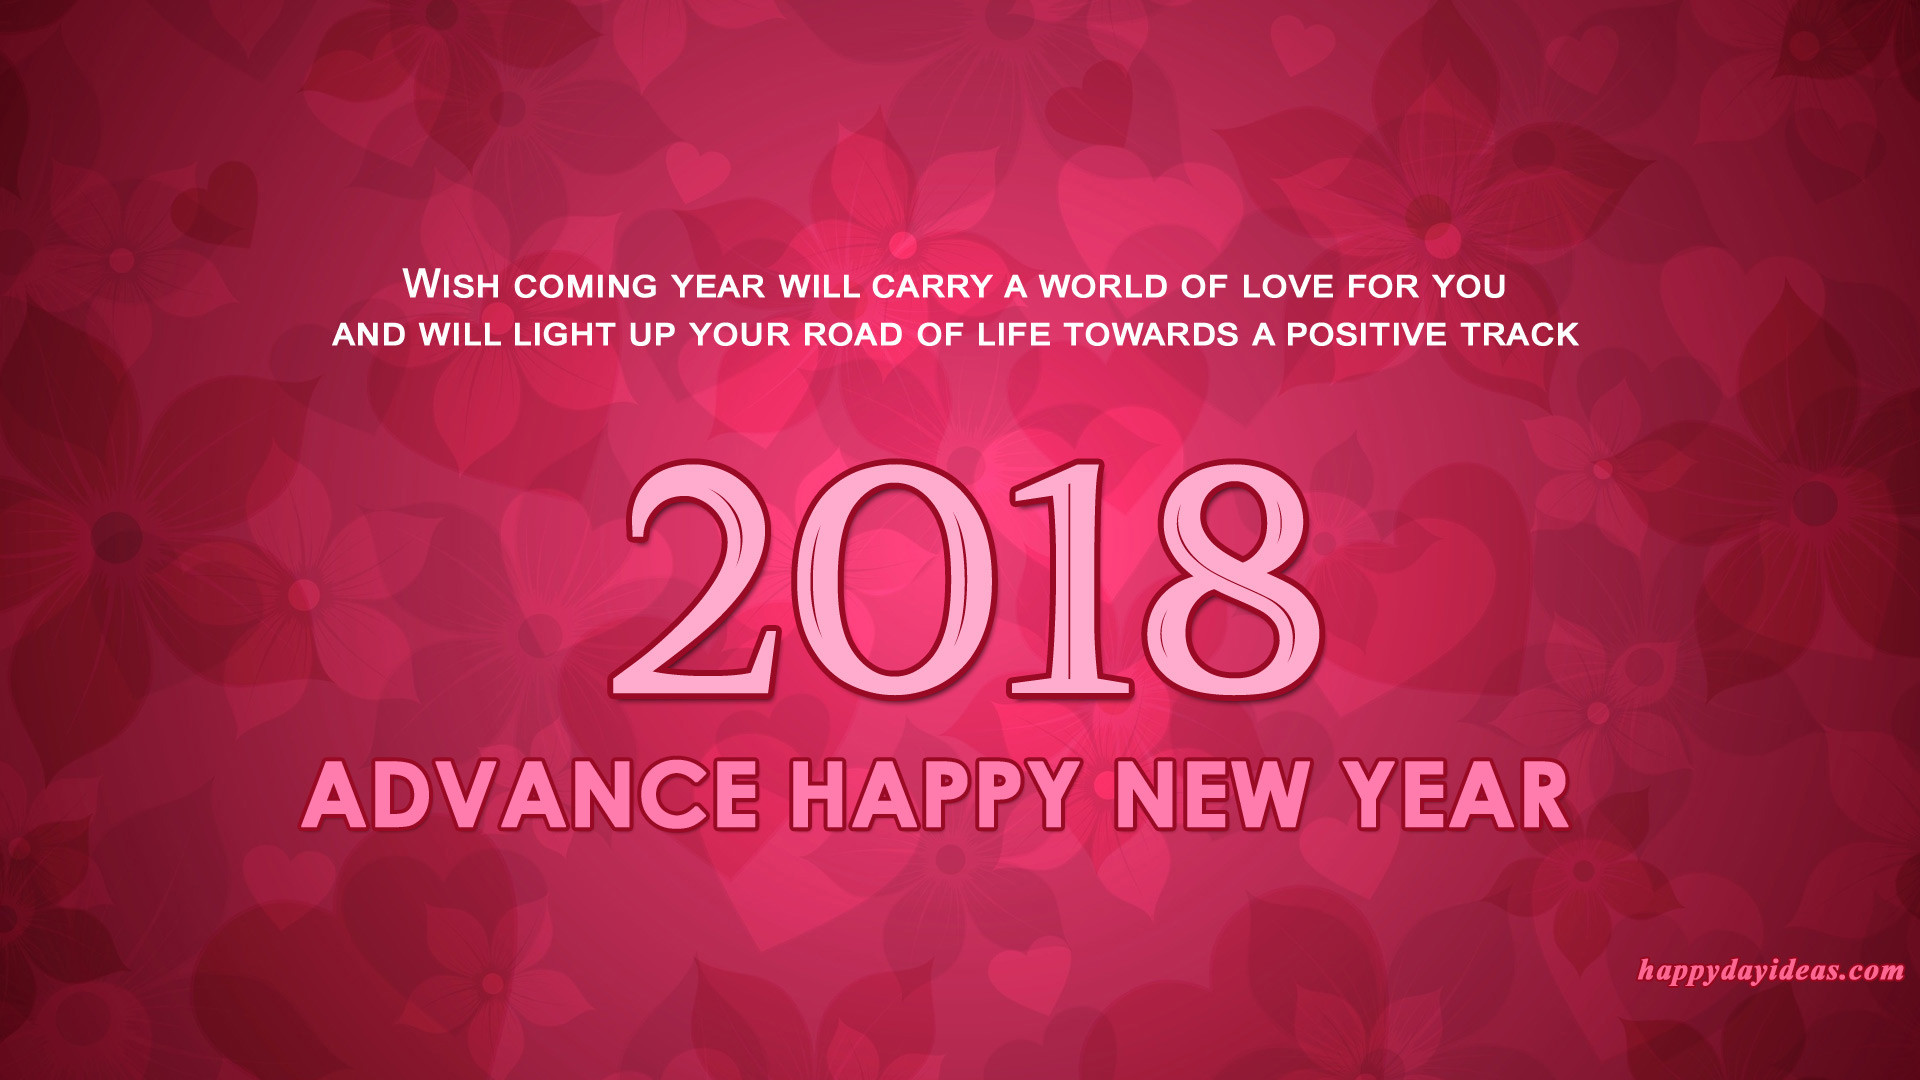 1920x1080 happy new year 2018 in advance wallpaper advance 2018 wallpaper